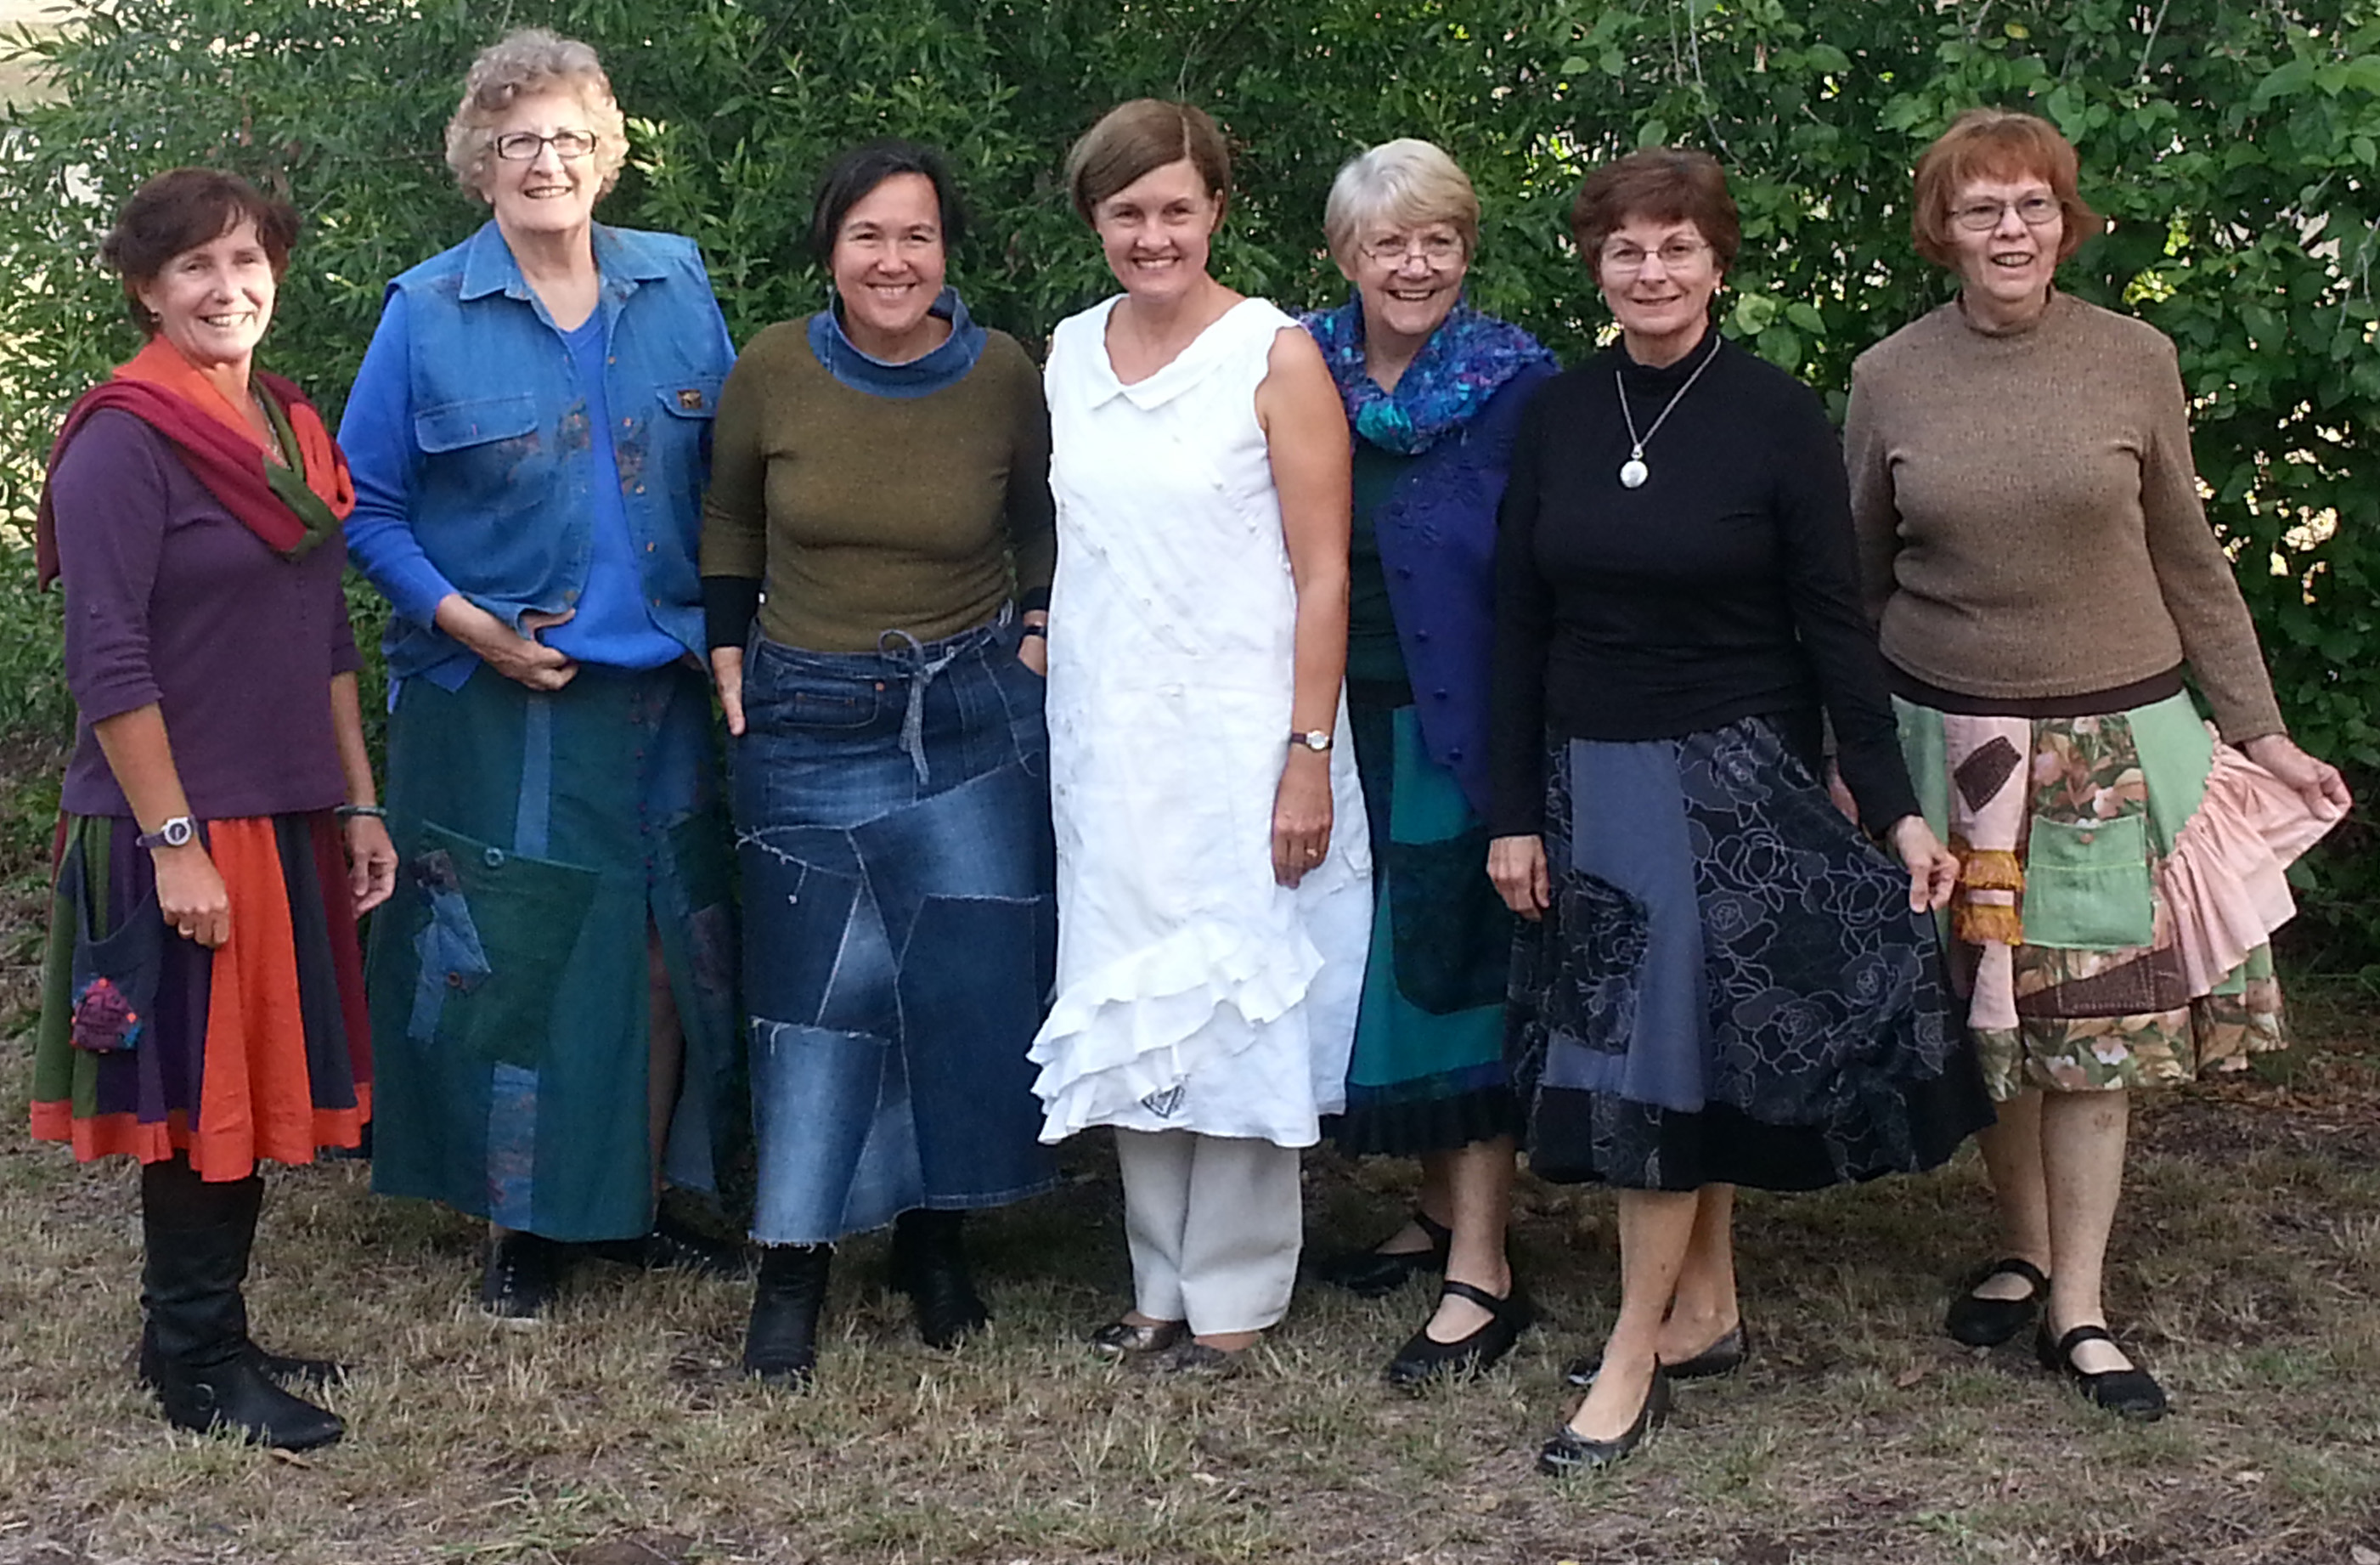 Kerrie, Gwen, Jane, Meredith, Audrey, Bev and Fay